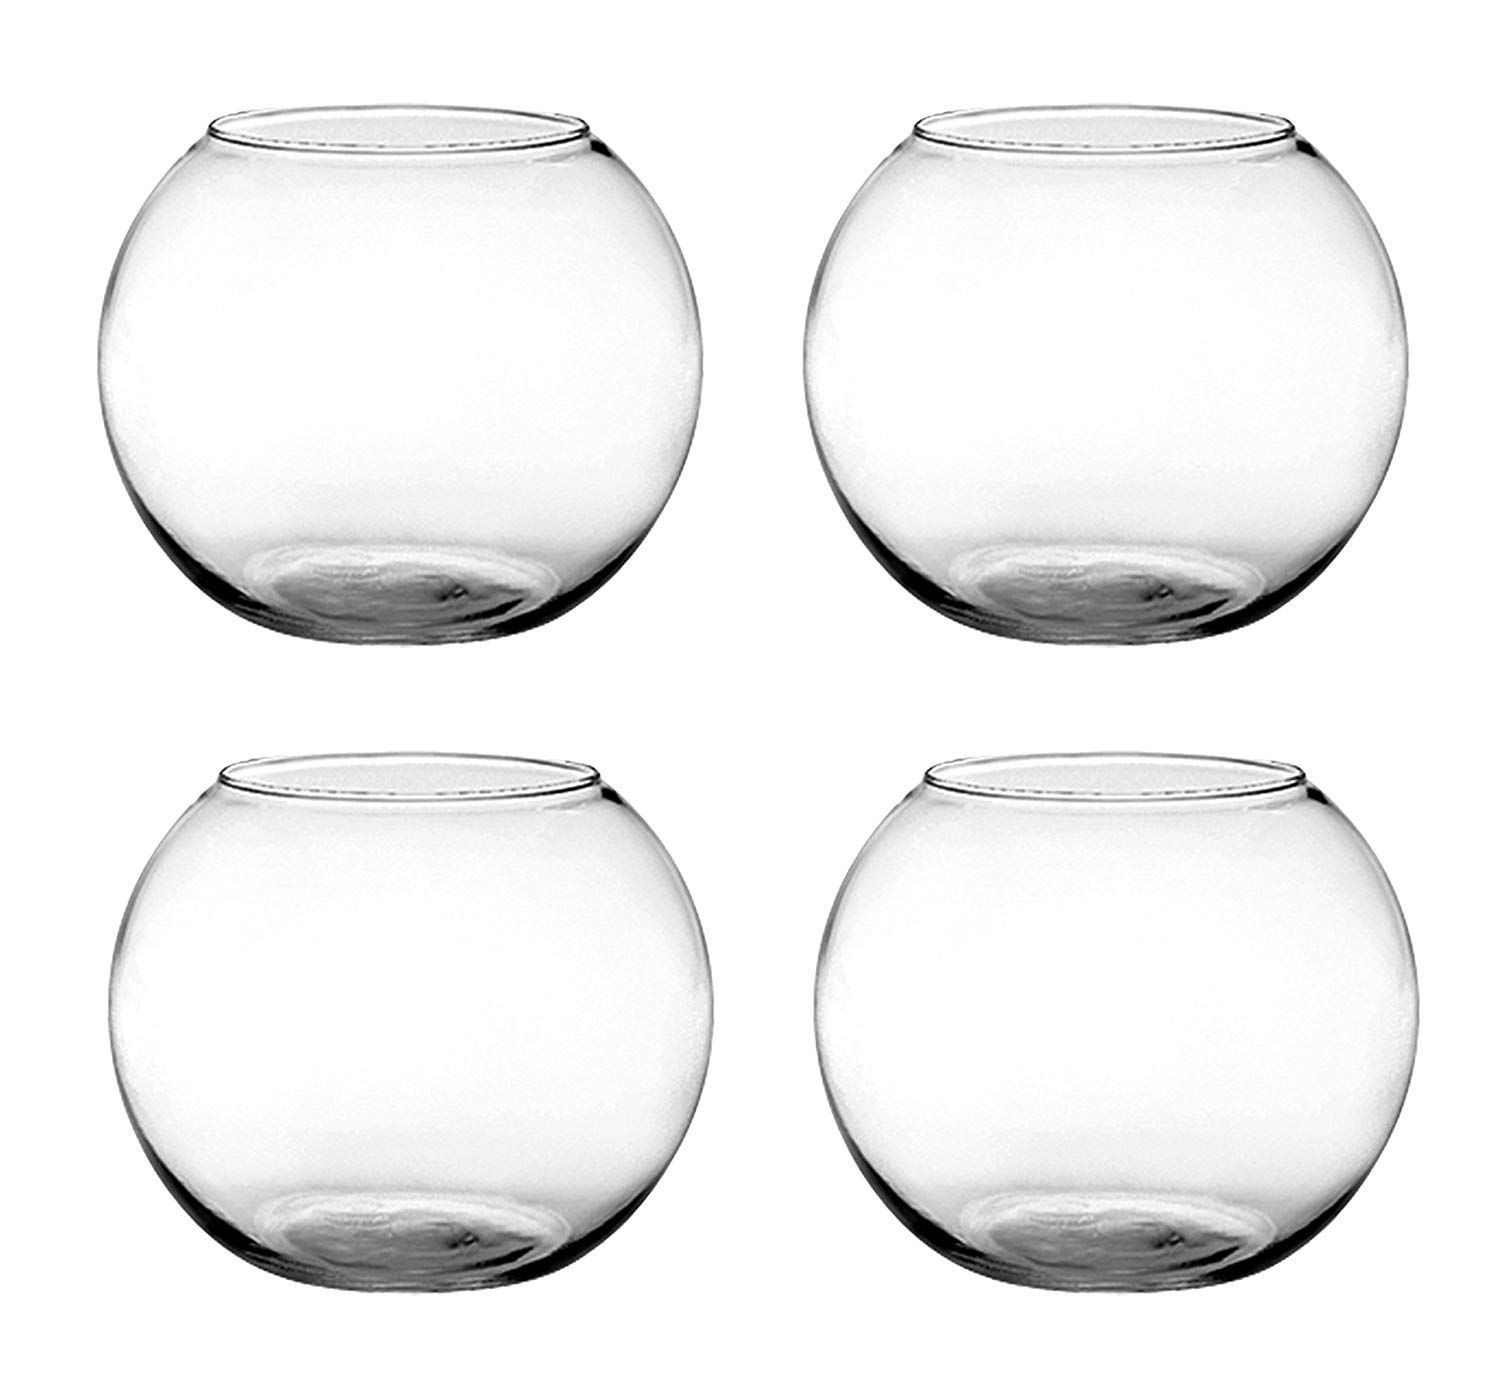 Wide Glass Vase Of 32 Wide Mouth Vase the Weekly World Inside Amazon Syndicate Sales 6 Rose Bowl Clear Planters Garden